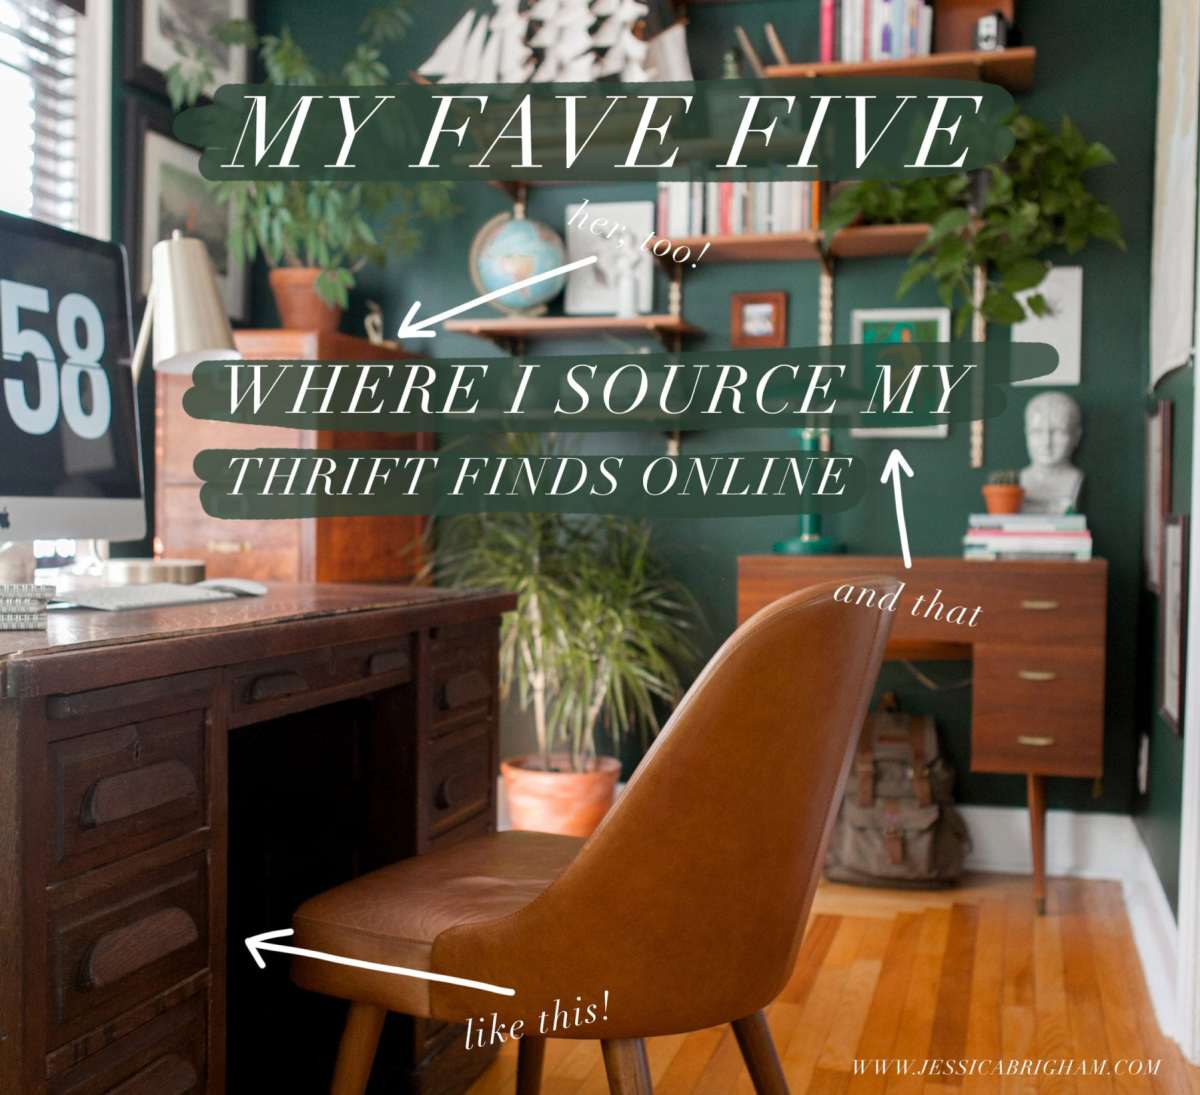 Where I Source My Thrift Finds Online | Jessica Brigham Blog | Thrift Shopping Tips | Where to Thrift | Online Thrift Store | Second Hand Stores